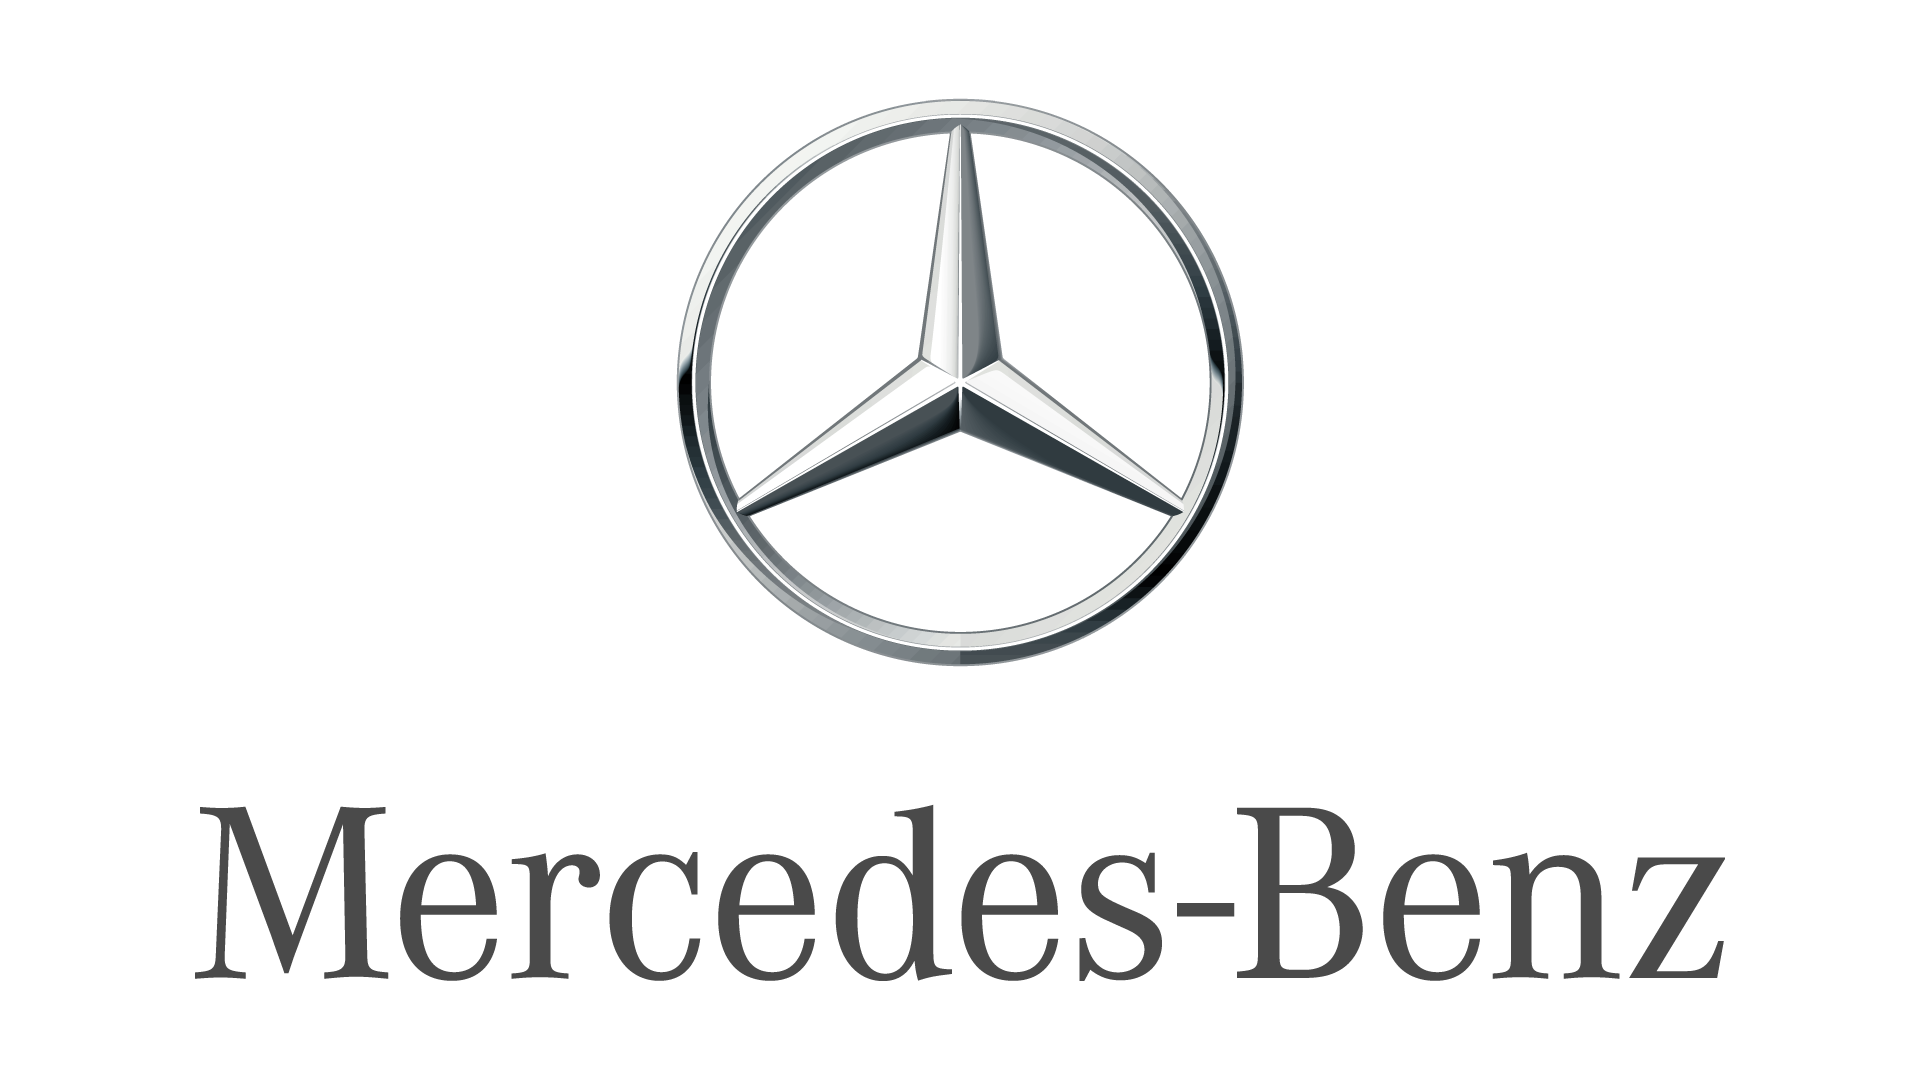 Mercedes Sprinter Dashboard Symbols And Meanings